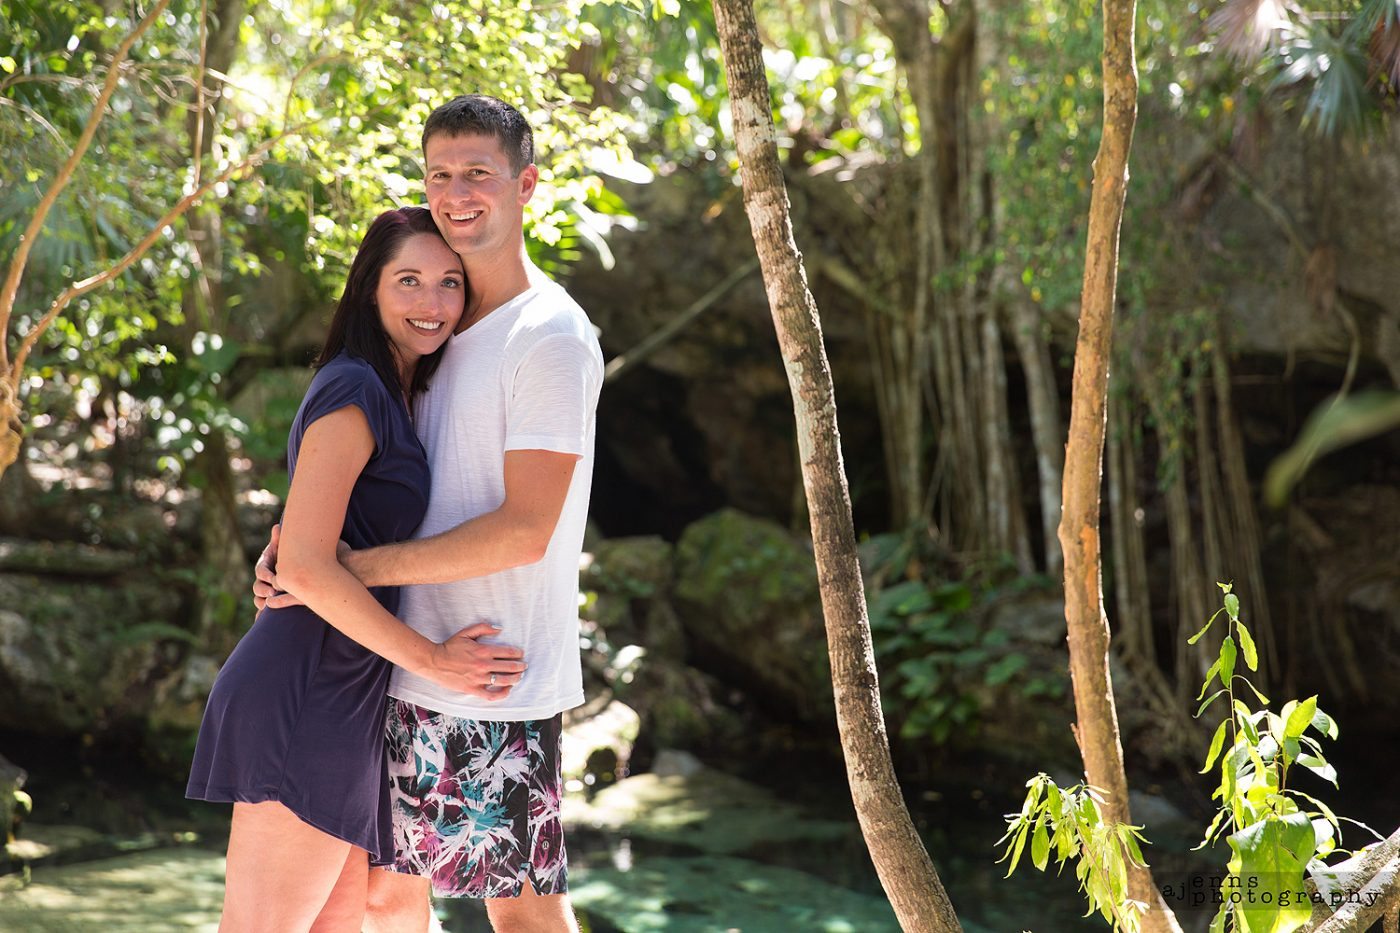 Kristen and Matthias embrace in the afternoon sunlight in the Mayan